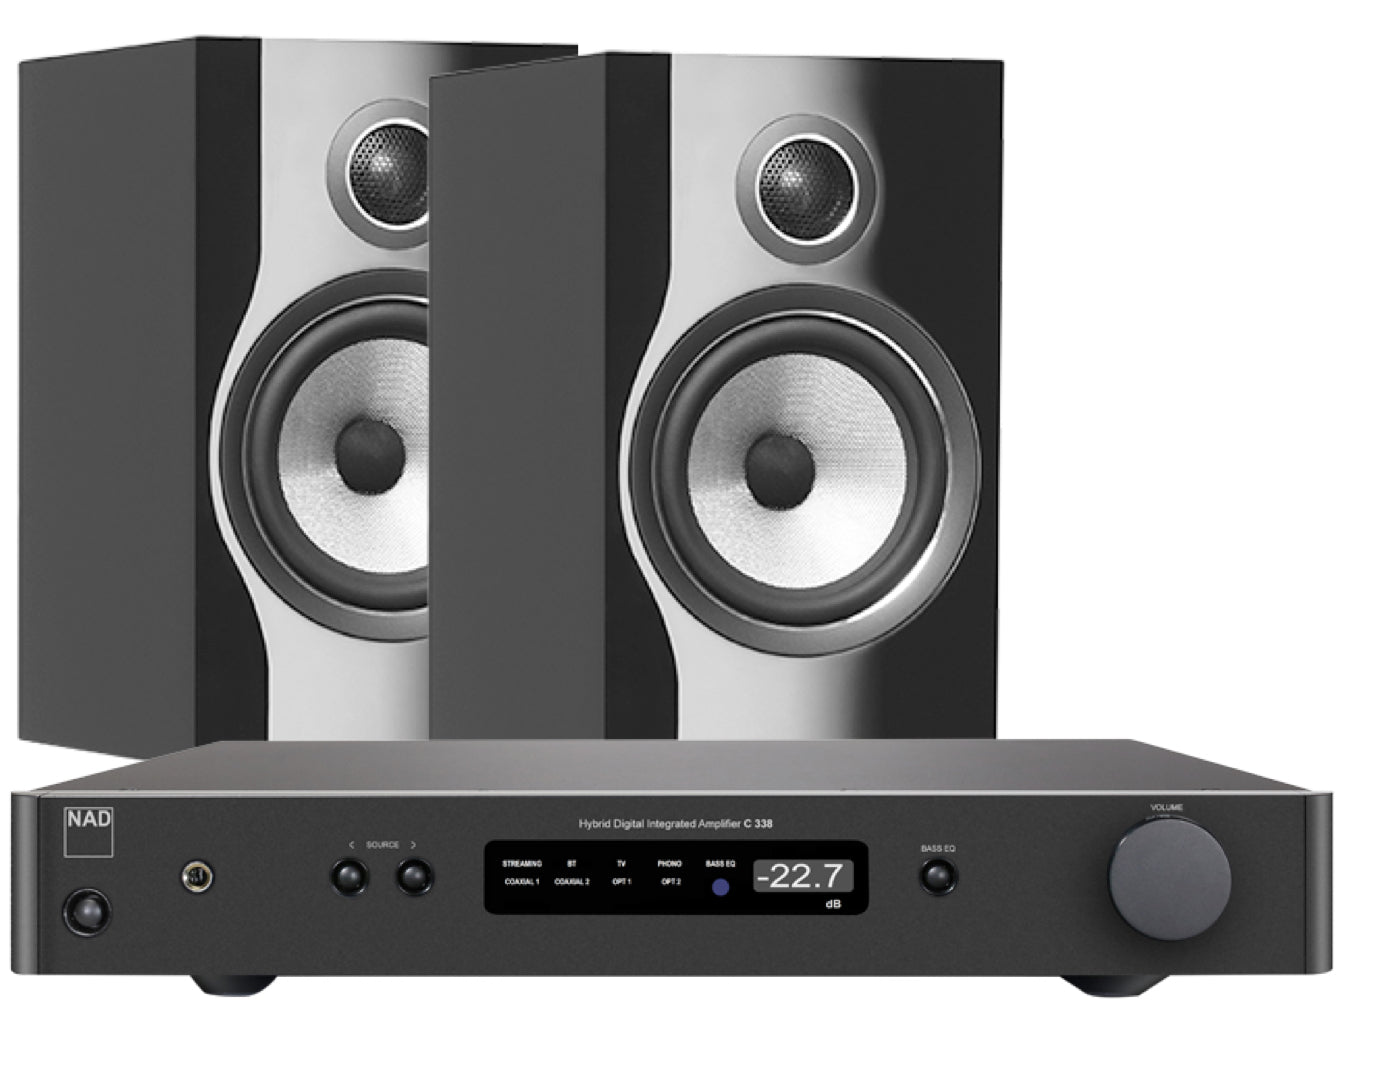 Beste NAD Affordable Hifi Amplifiers | Quantum Audio and Visual Lifestyle PT-32